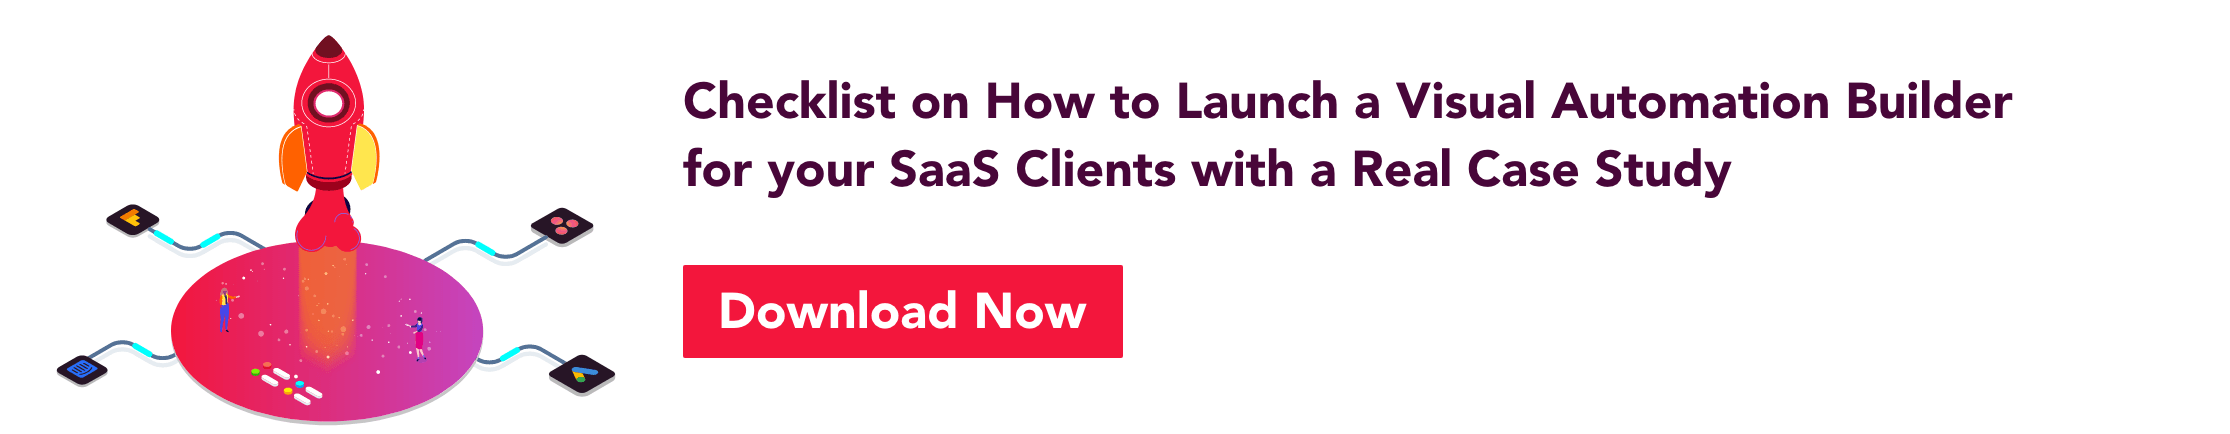 checklist on how to launch a visual automation builder